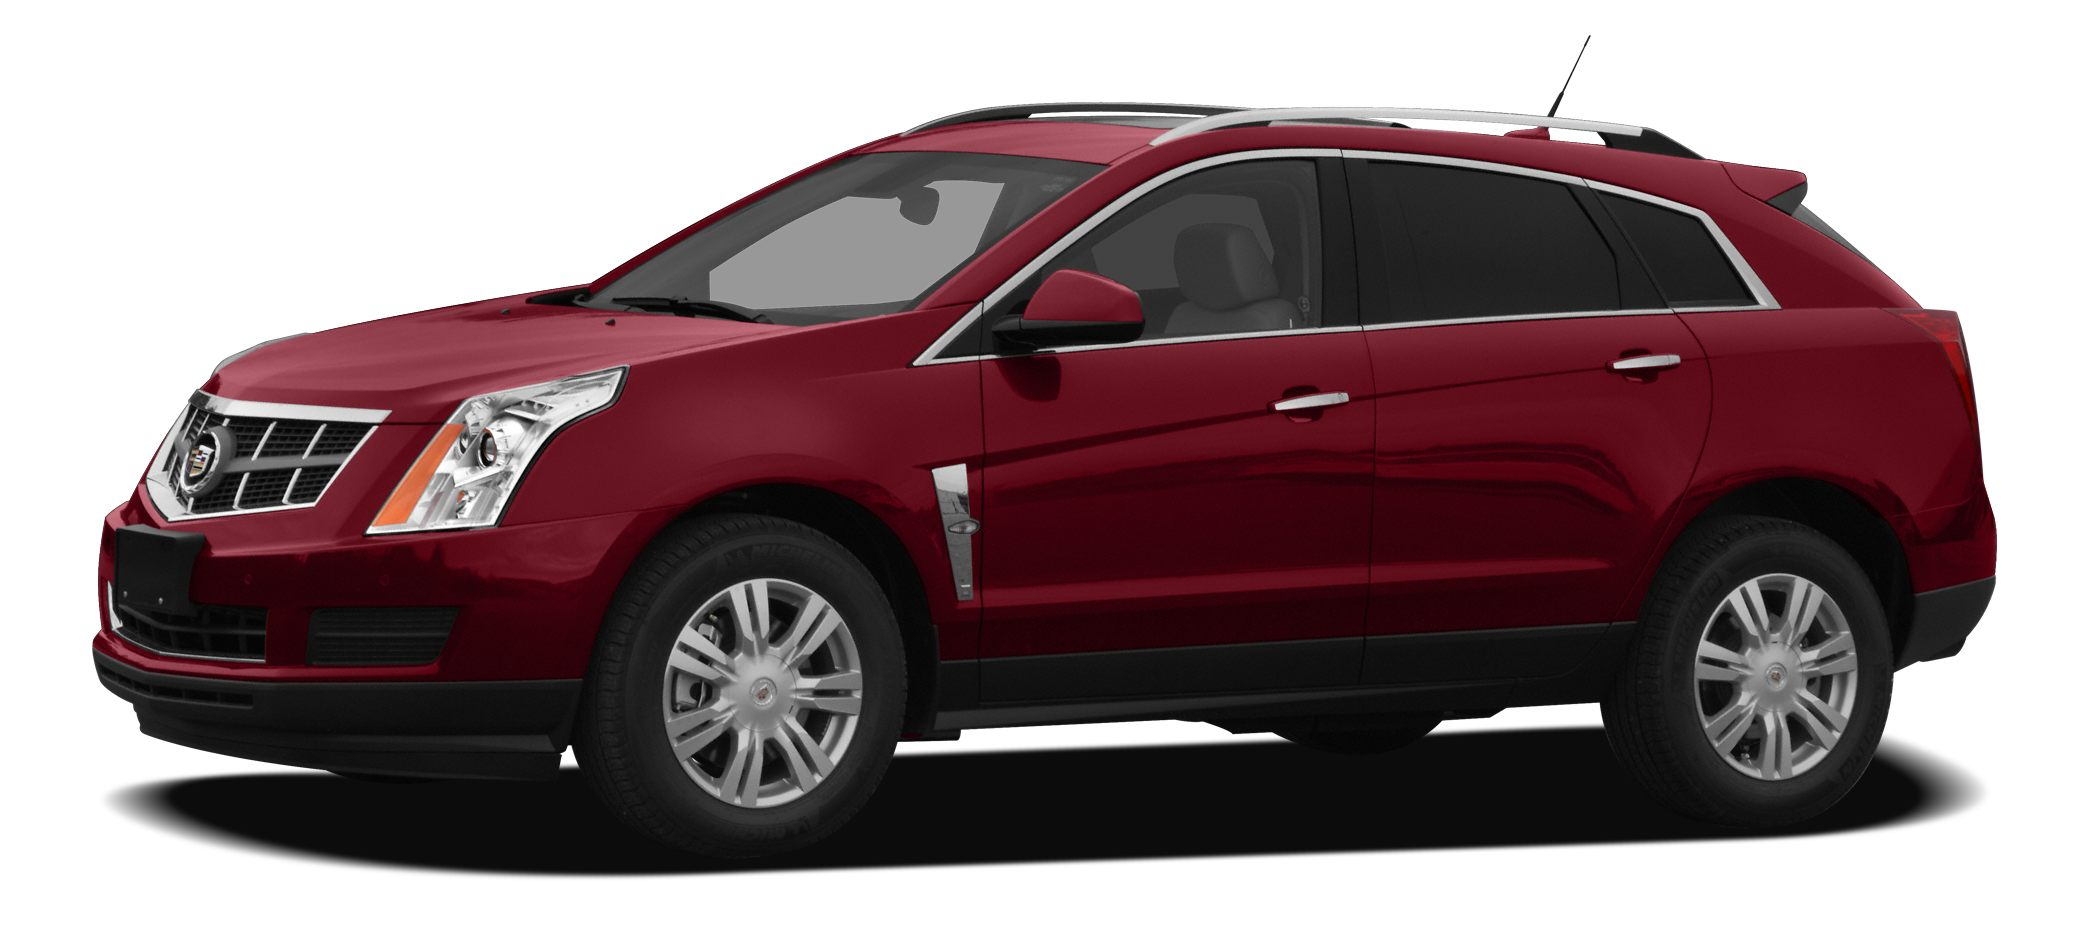 2010 Cadillac SRX Luxury Collection OUR PRICESYoure probably wondering why our prices are so muc